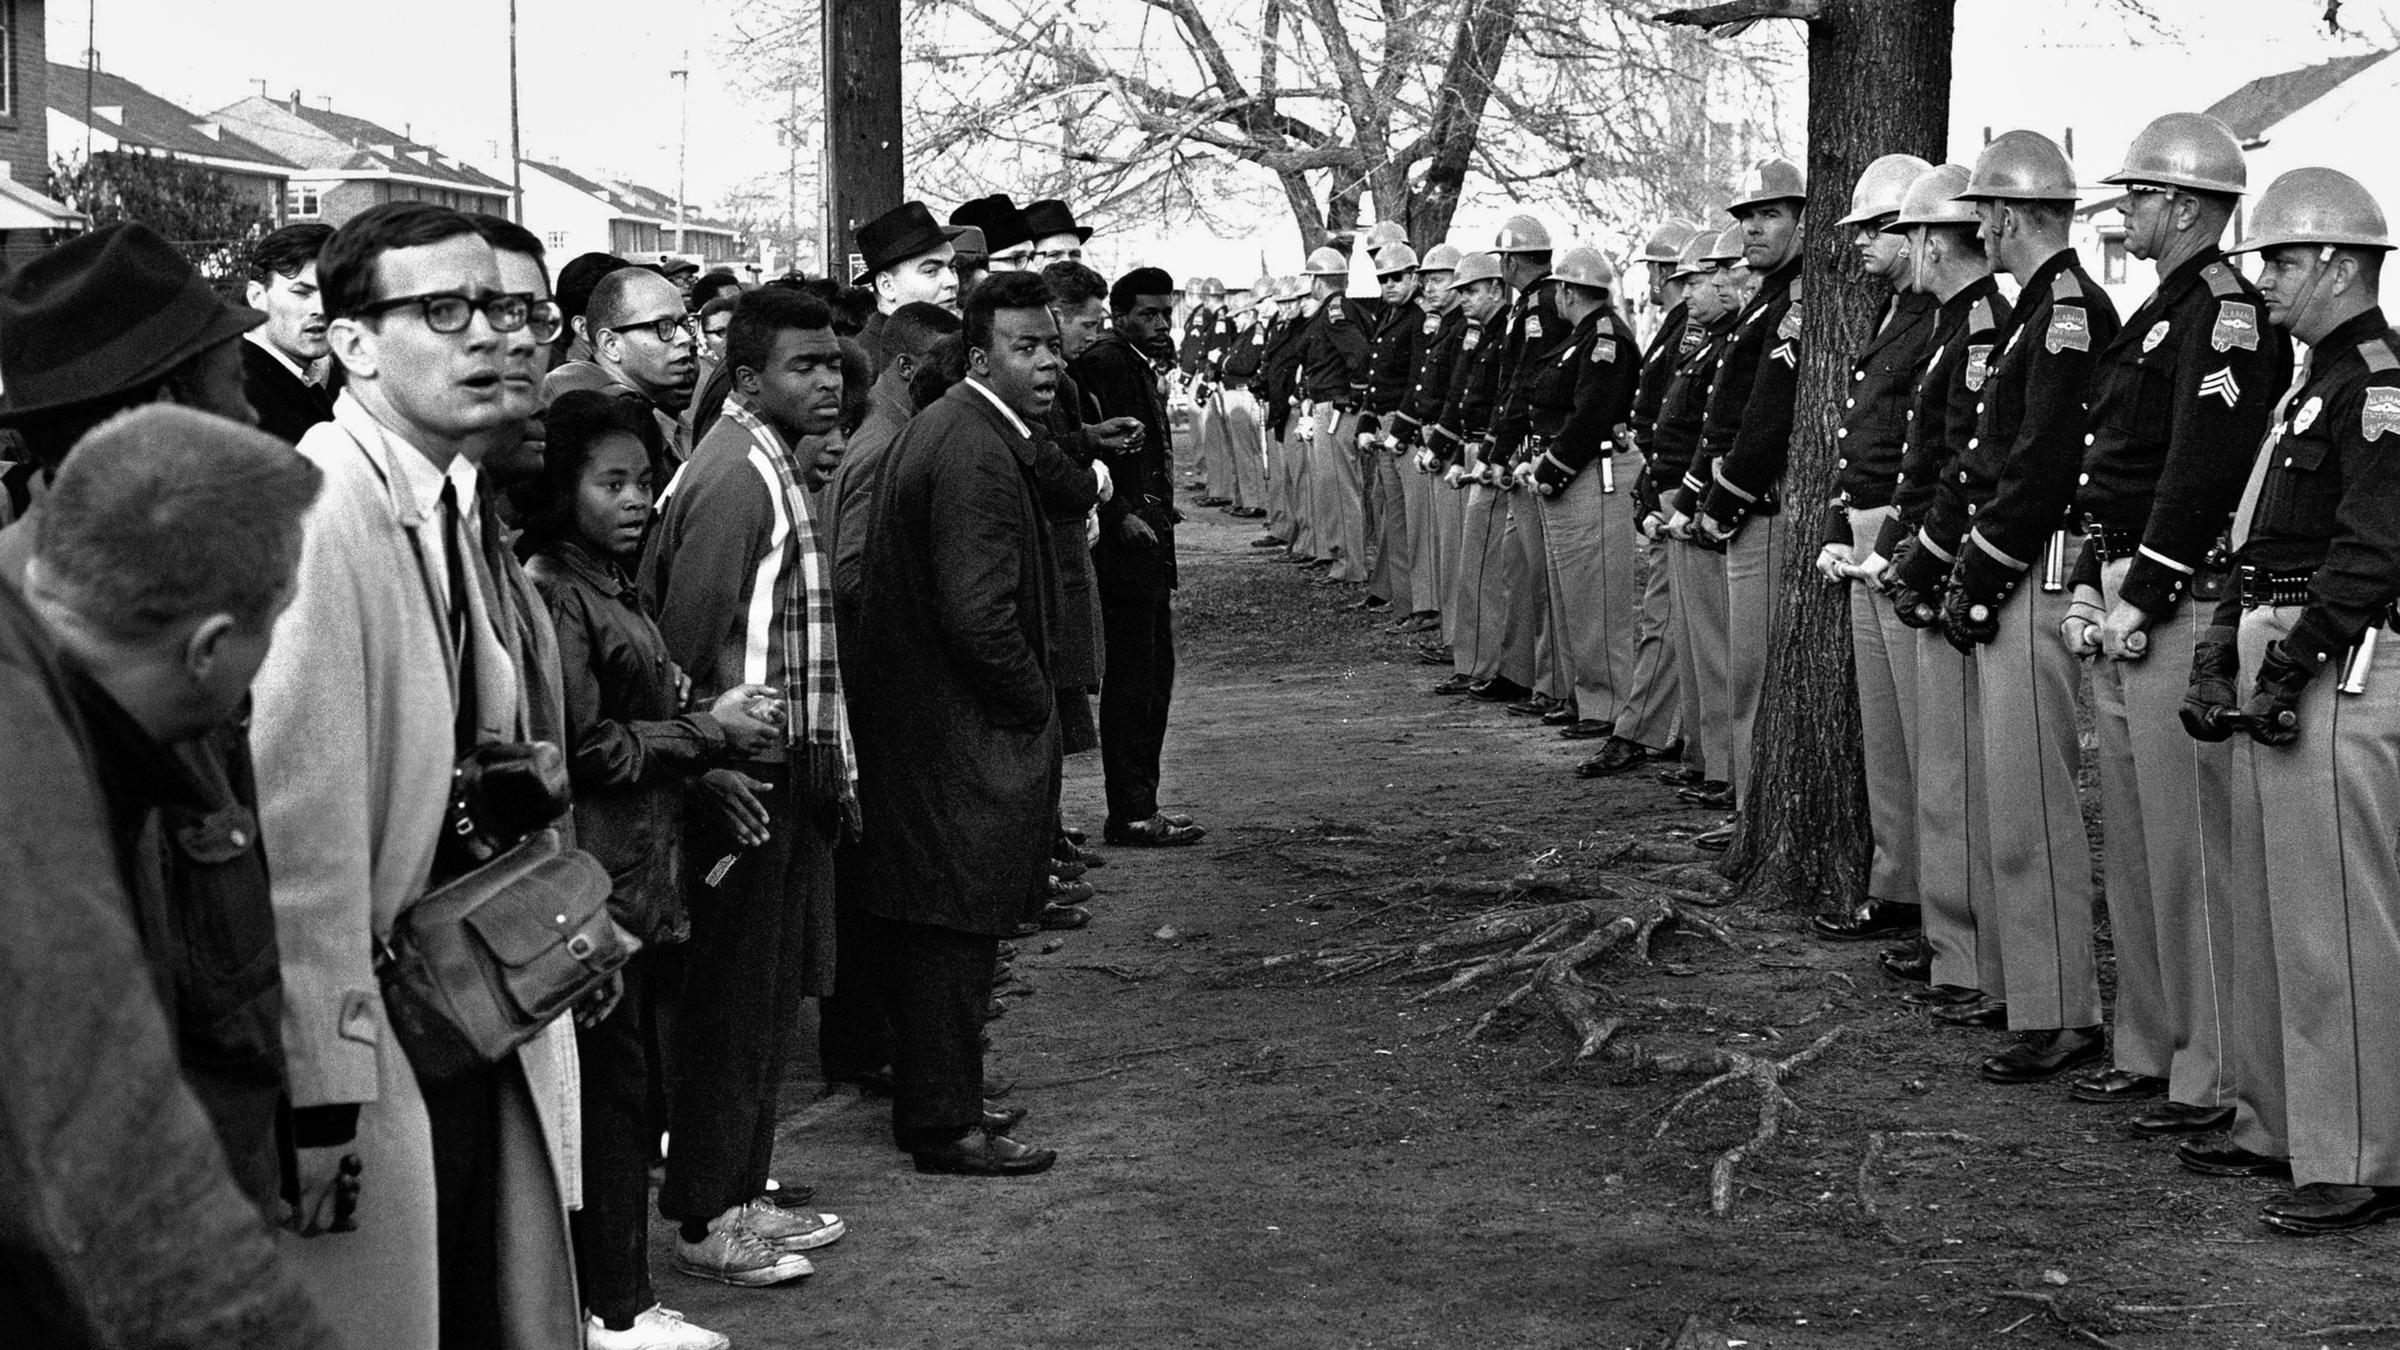 an essay on the civil rights history of selma alabama From selma to montgomery: an introduction to the 1965 marches – lesson plan lesson plan students will learn about the 1965 marches from selma to montgomery during the civil rights movement.